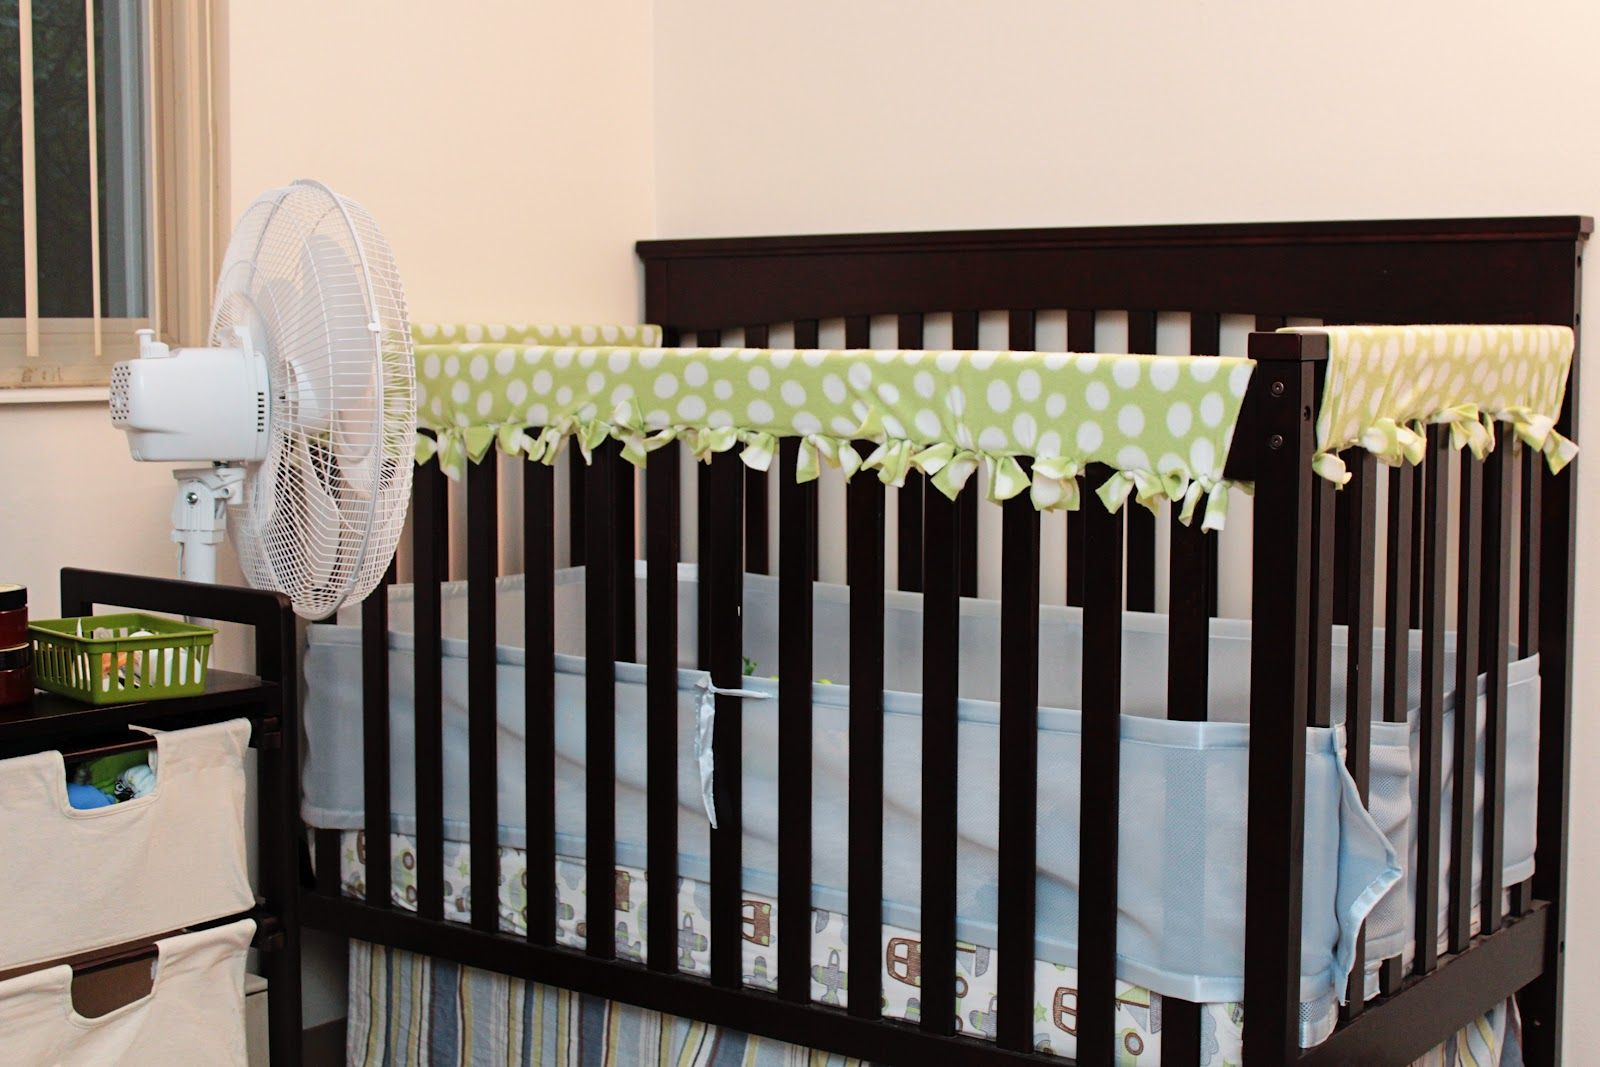 DIY Fleece Crib Rail Guard...NO SEW!! I wish I would have